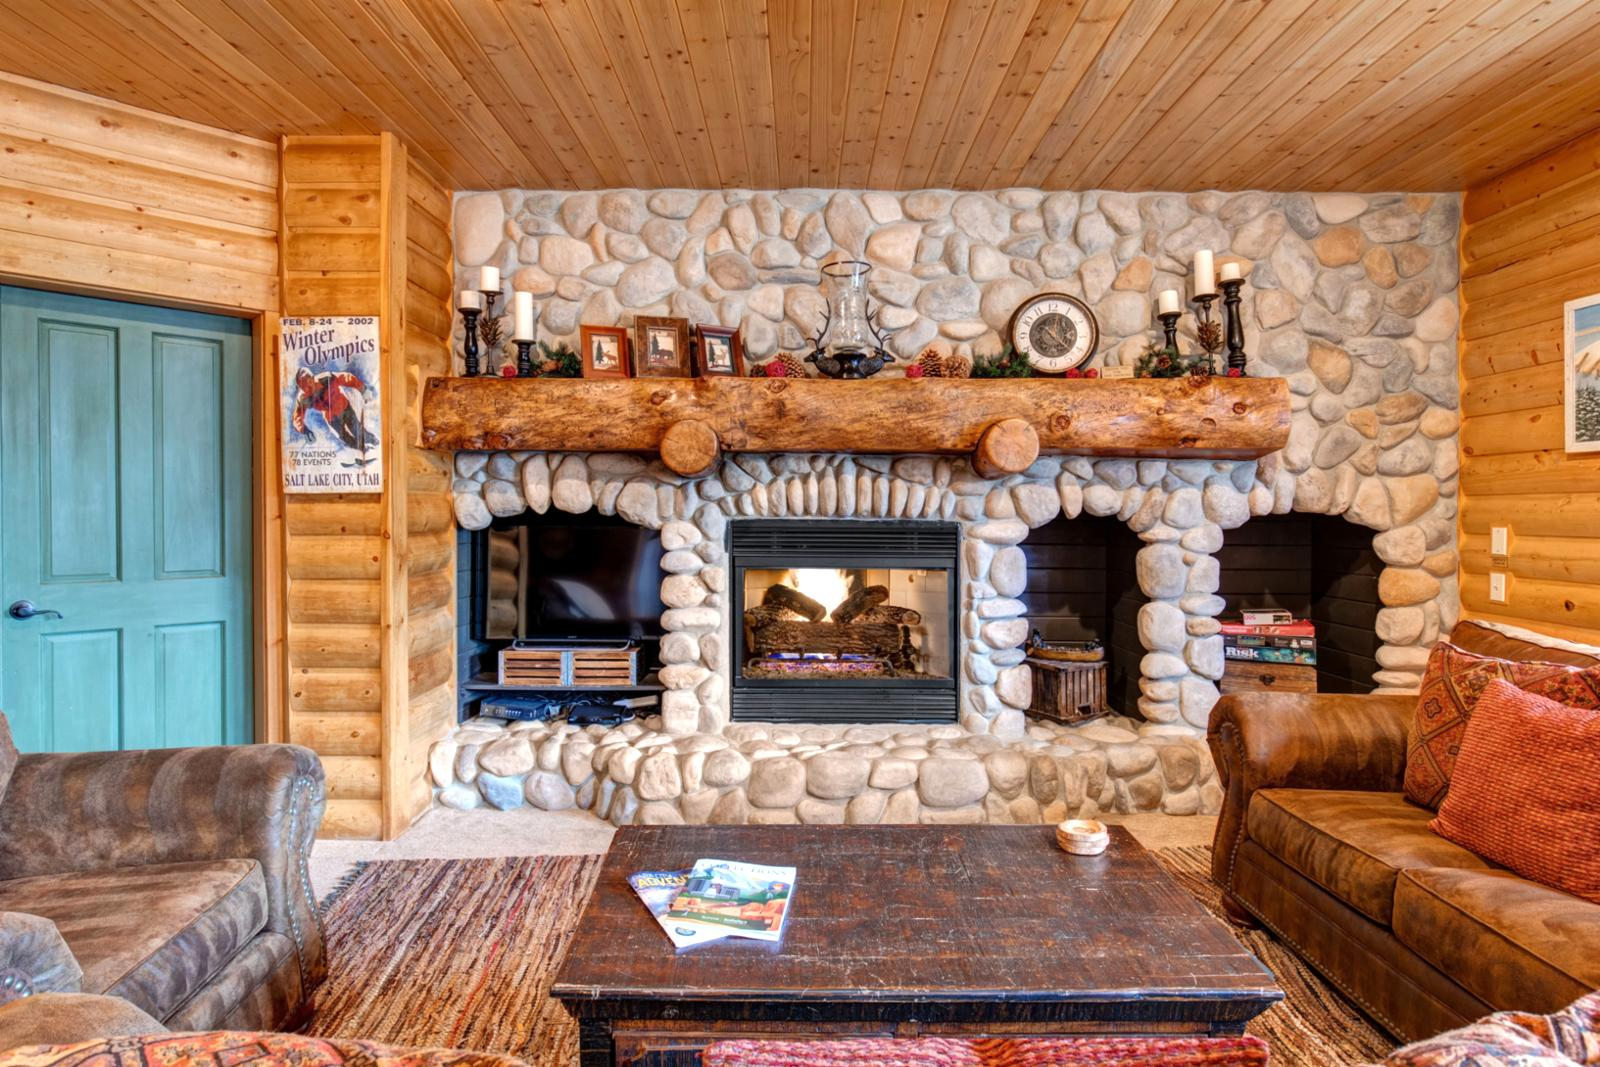 Seating for all to enjoy the gas fireplace or a movie